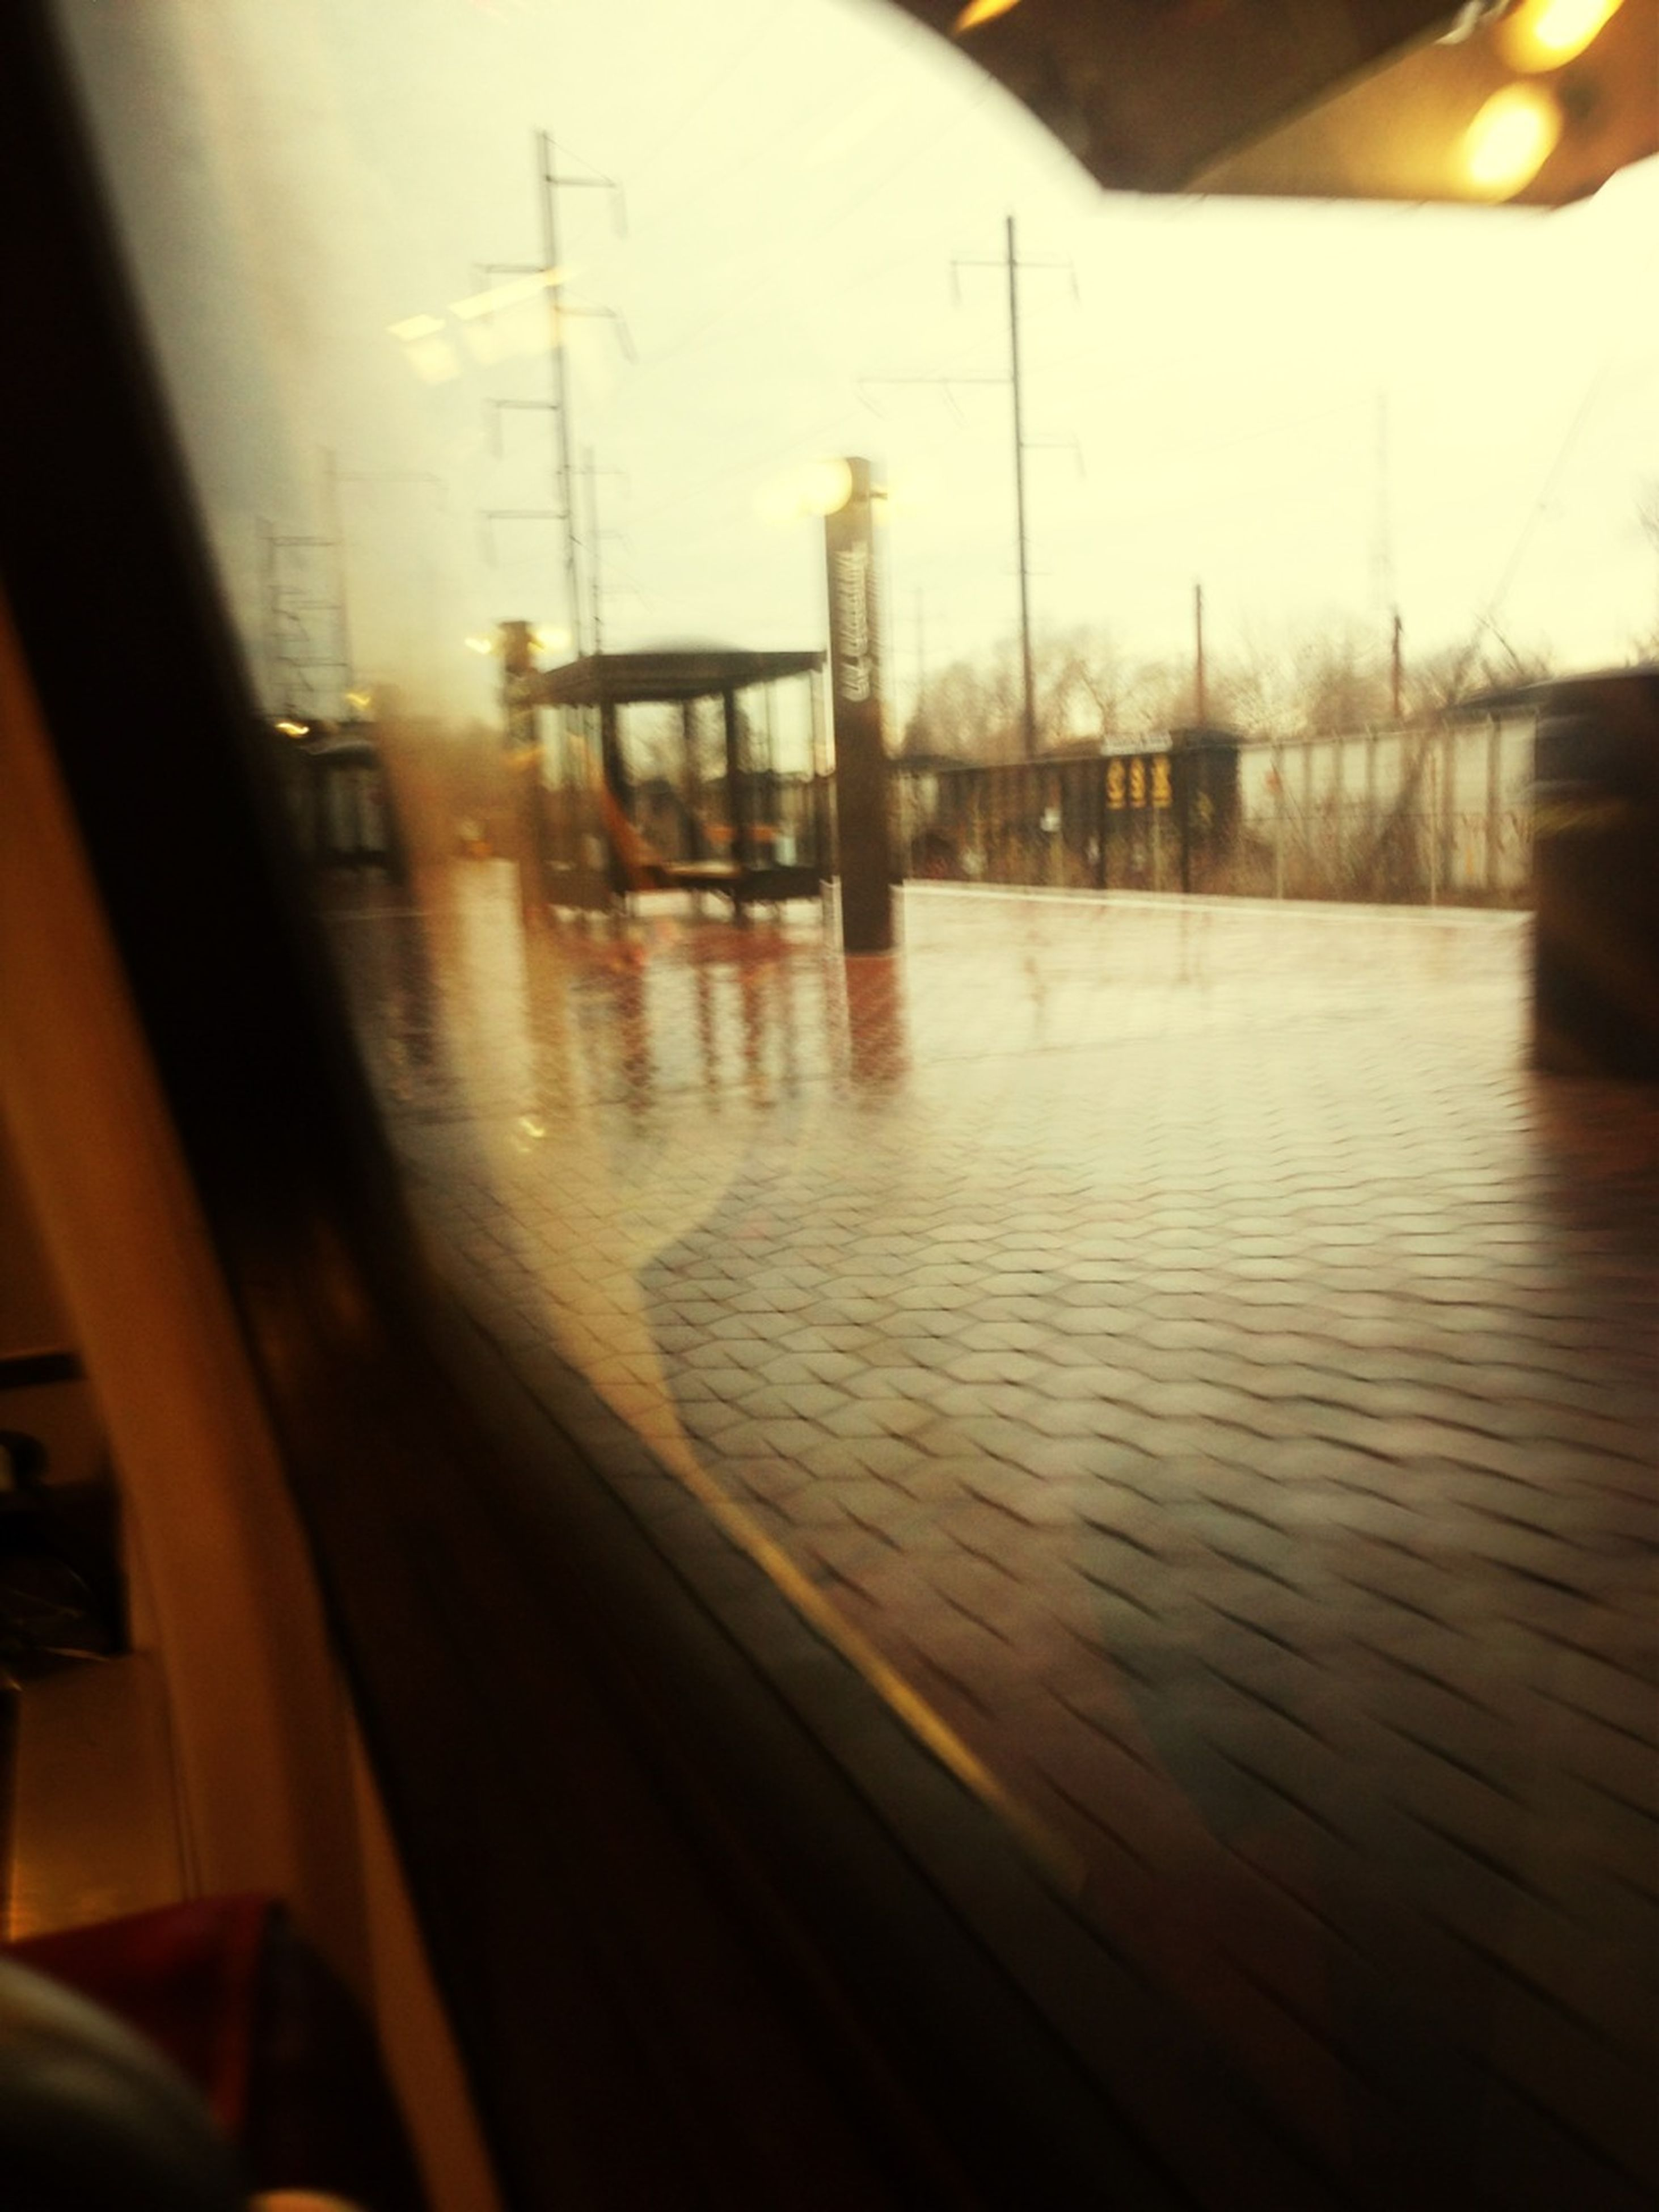 transportation, indoors, window, mode of transport, transparent, glass - material, vehicle interior, car, land vehicle, reflection, illuminated, travel, public transportation, empty, no people, built structure, train - vehicle, street, looking through window, windshield